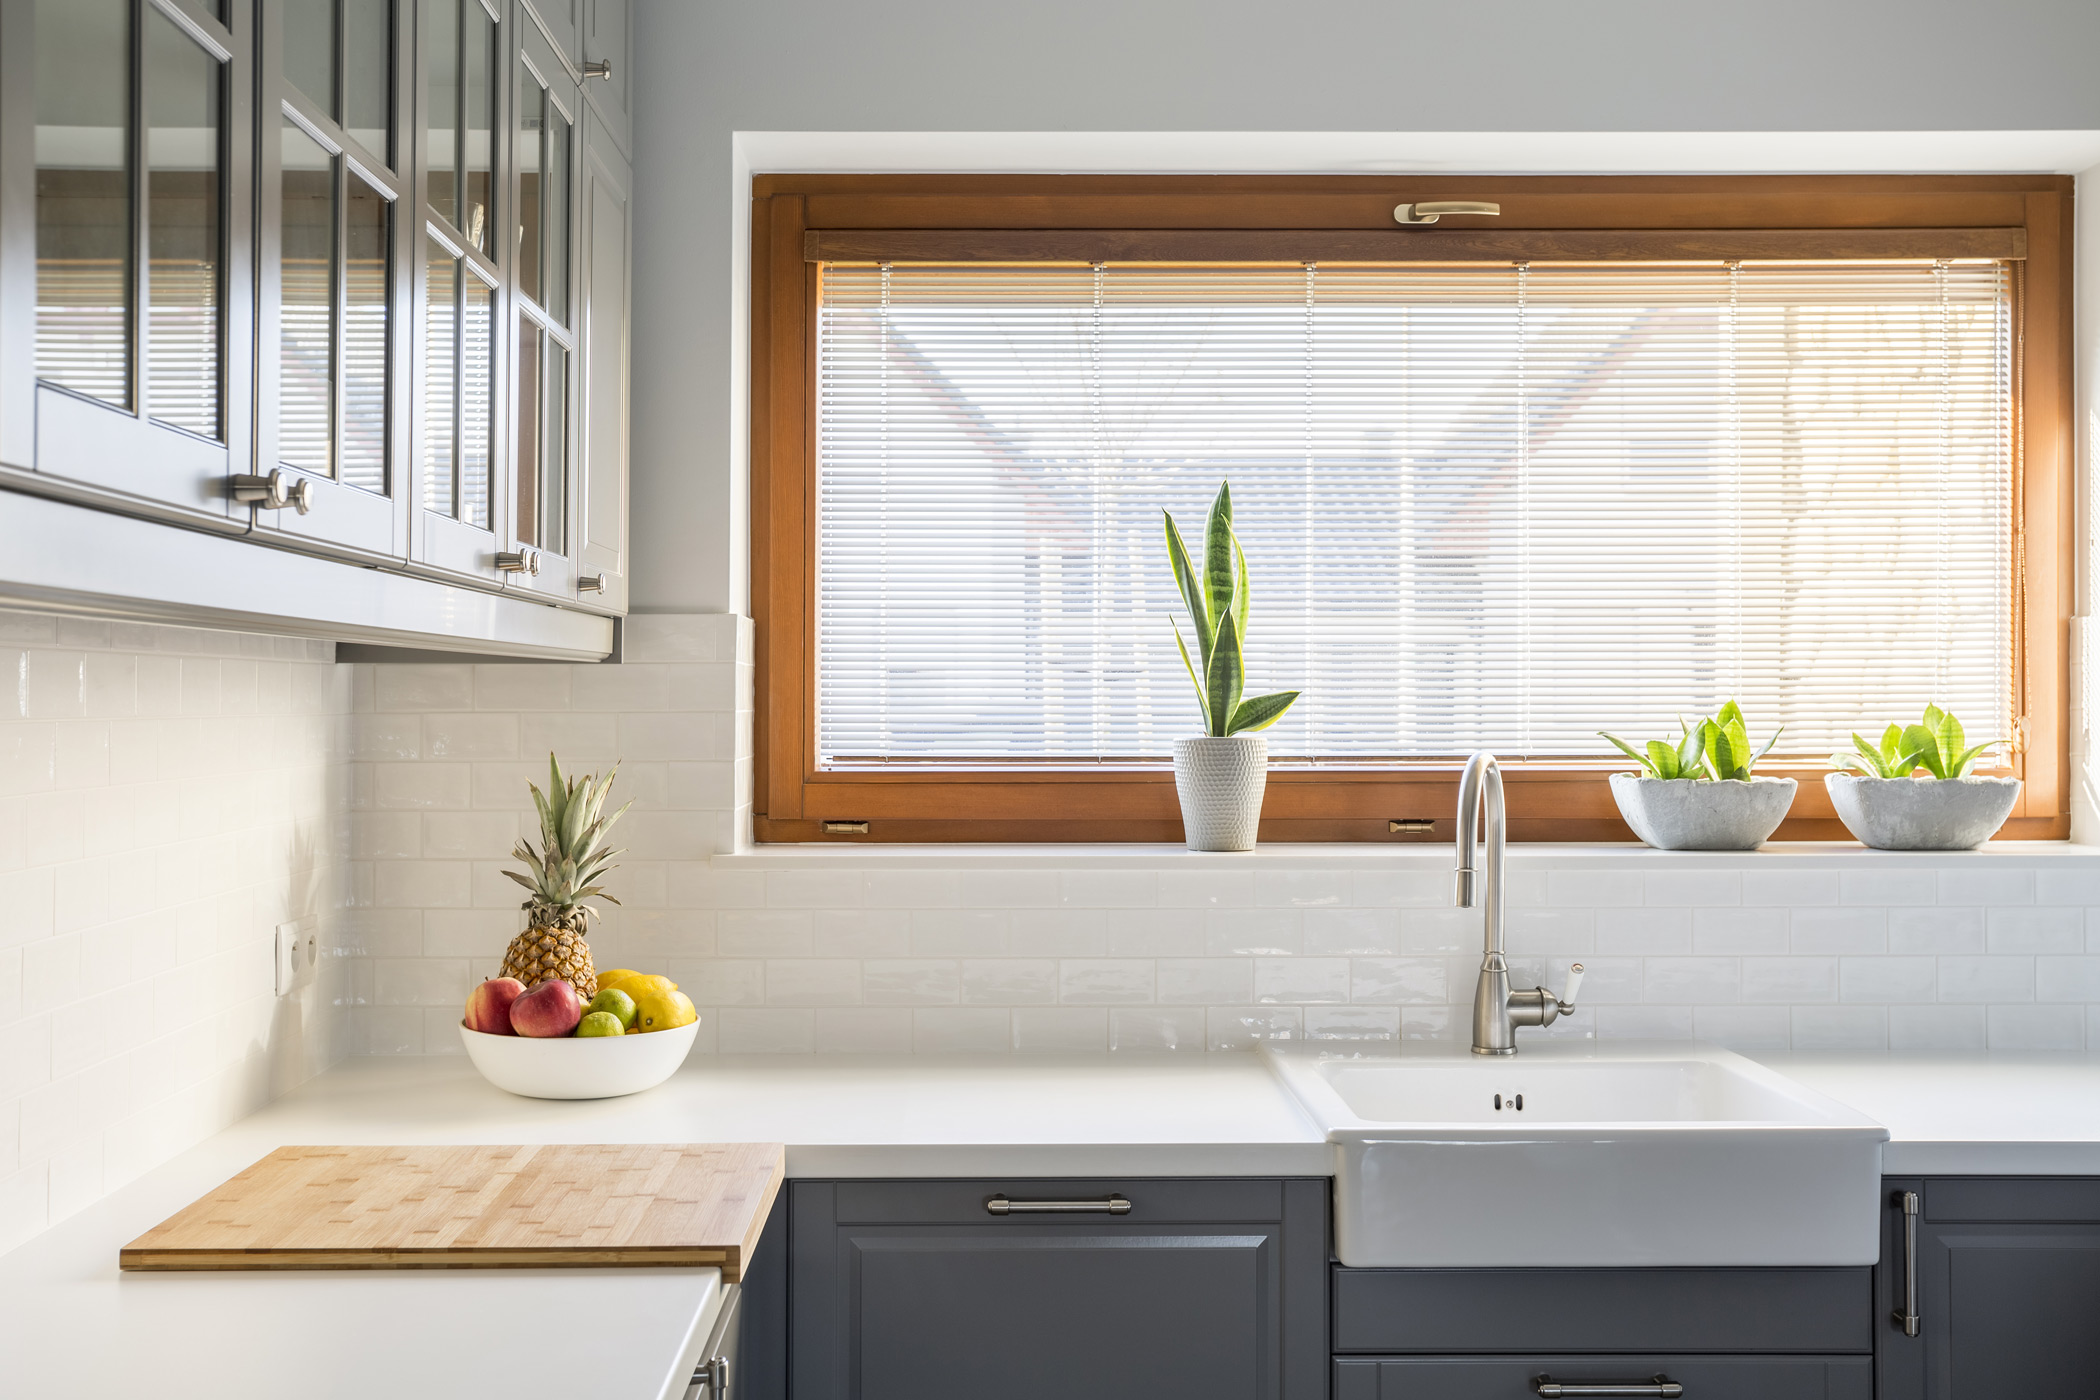 a bright kitchen sink and cabinets under an open window covered with open blinds